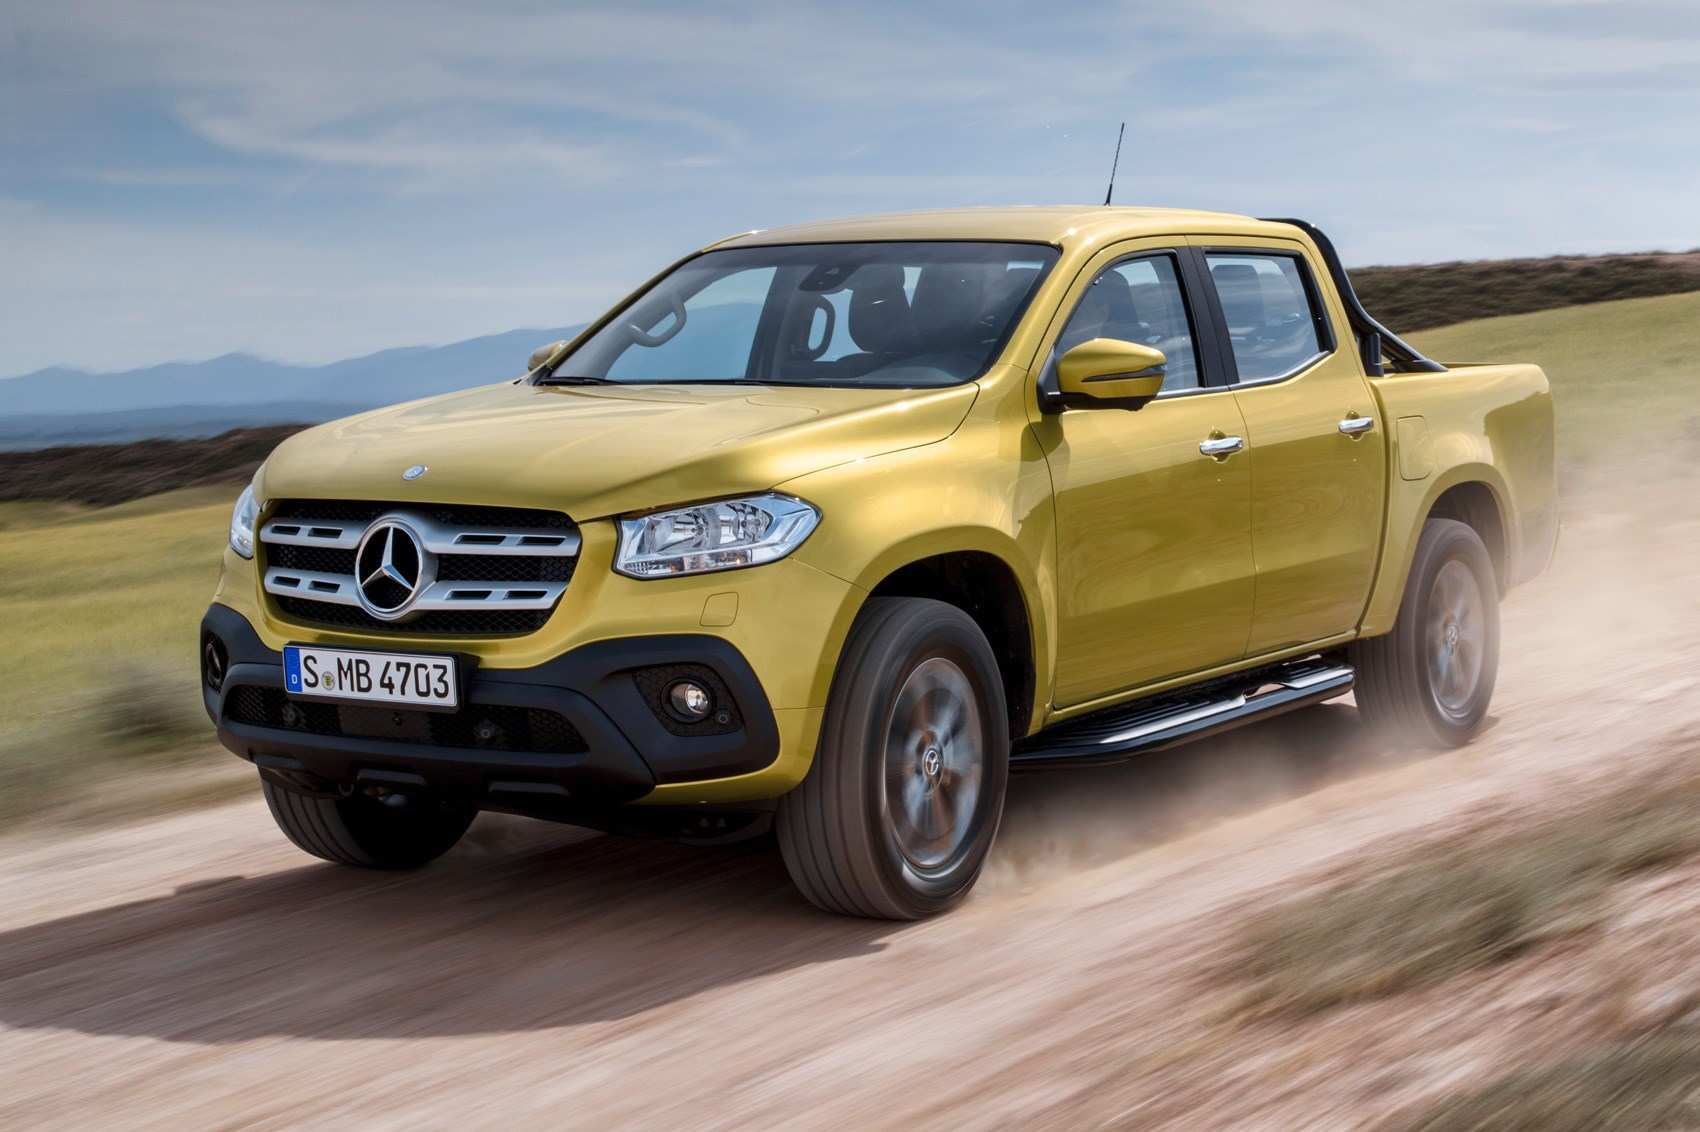 93 Best Review 2019 Mercedes X Class Pickup Truck Release Date Performance and New Engine with 2019 Mercedes X Class Pickup Truck Release Date